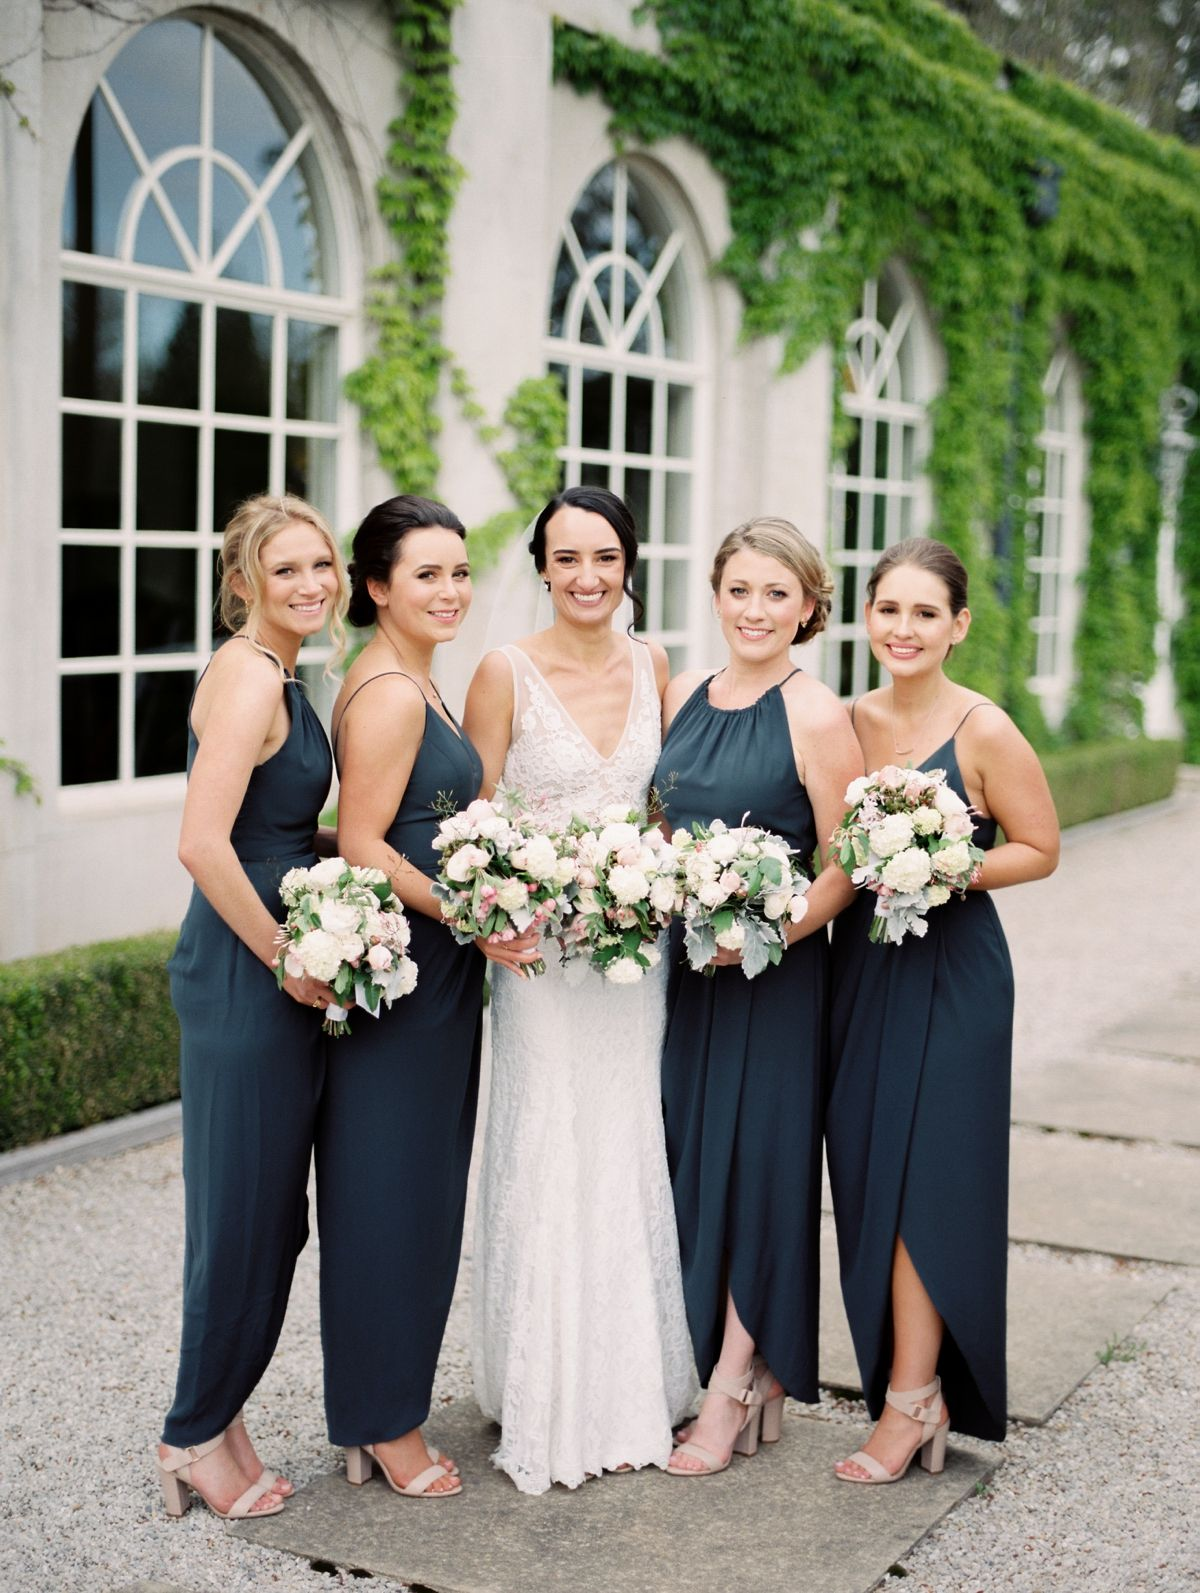 Charcoal bridesmaids dresses lovely day pinterest charcoal charcoal bridesmaids dresses ombrellifo Gallery